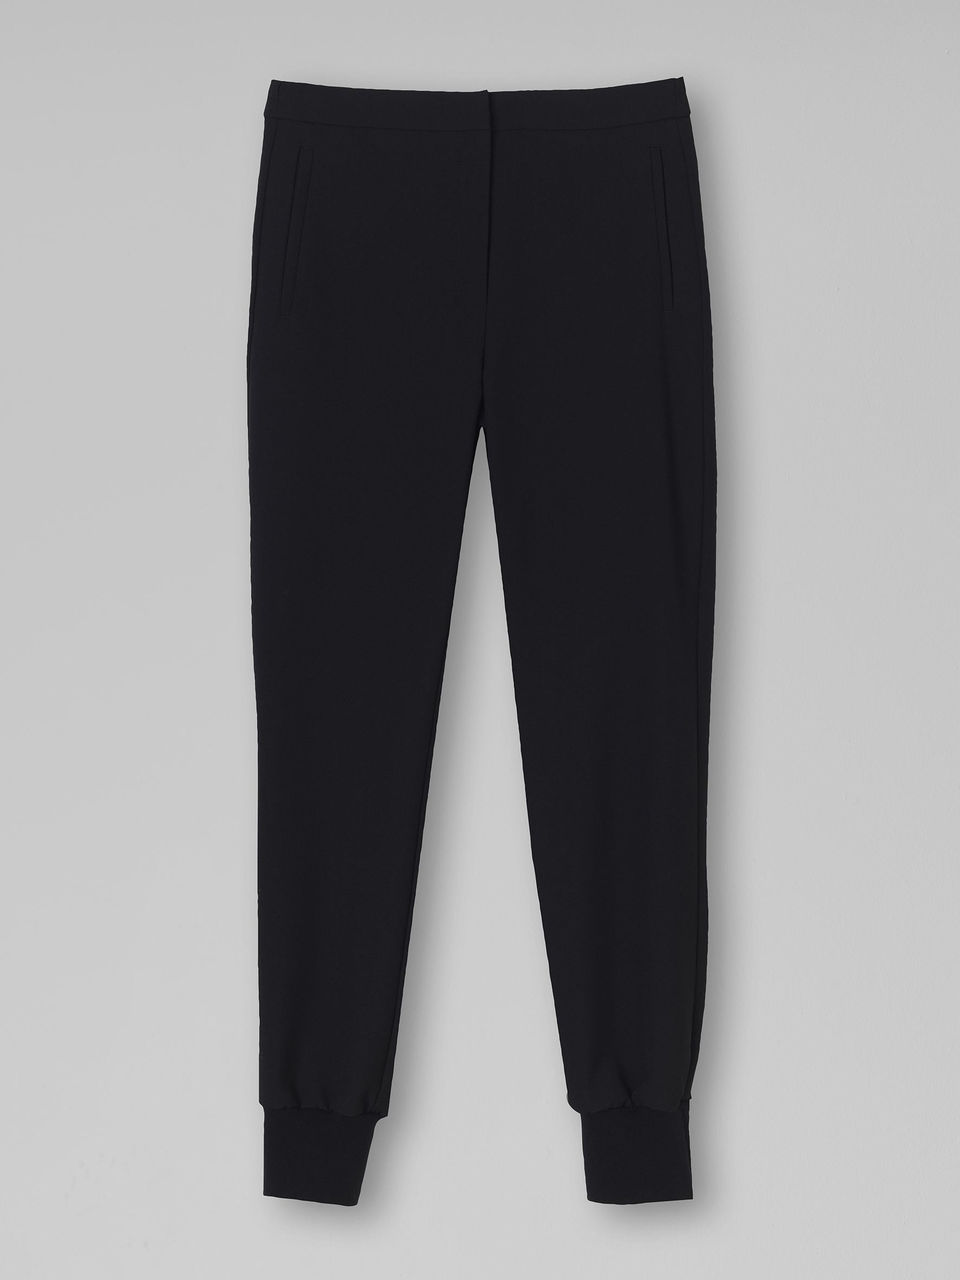 By Malene Birger Leta Trousers